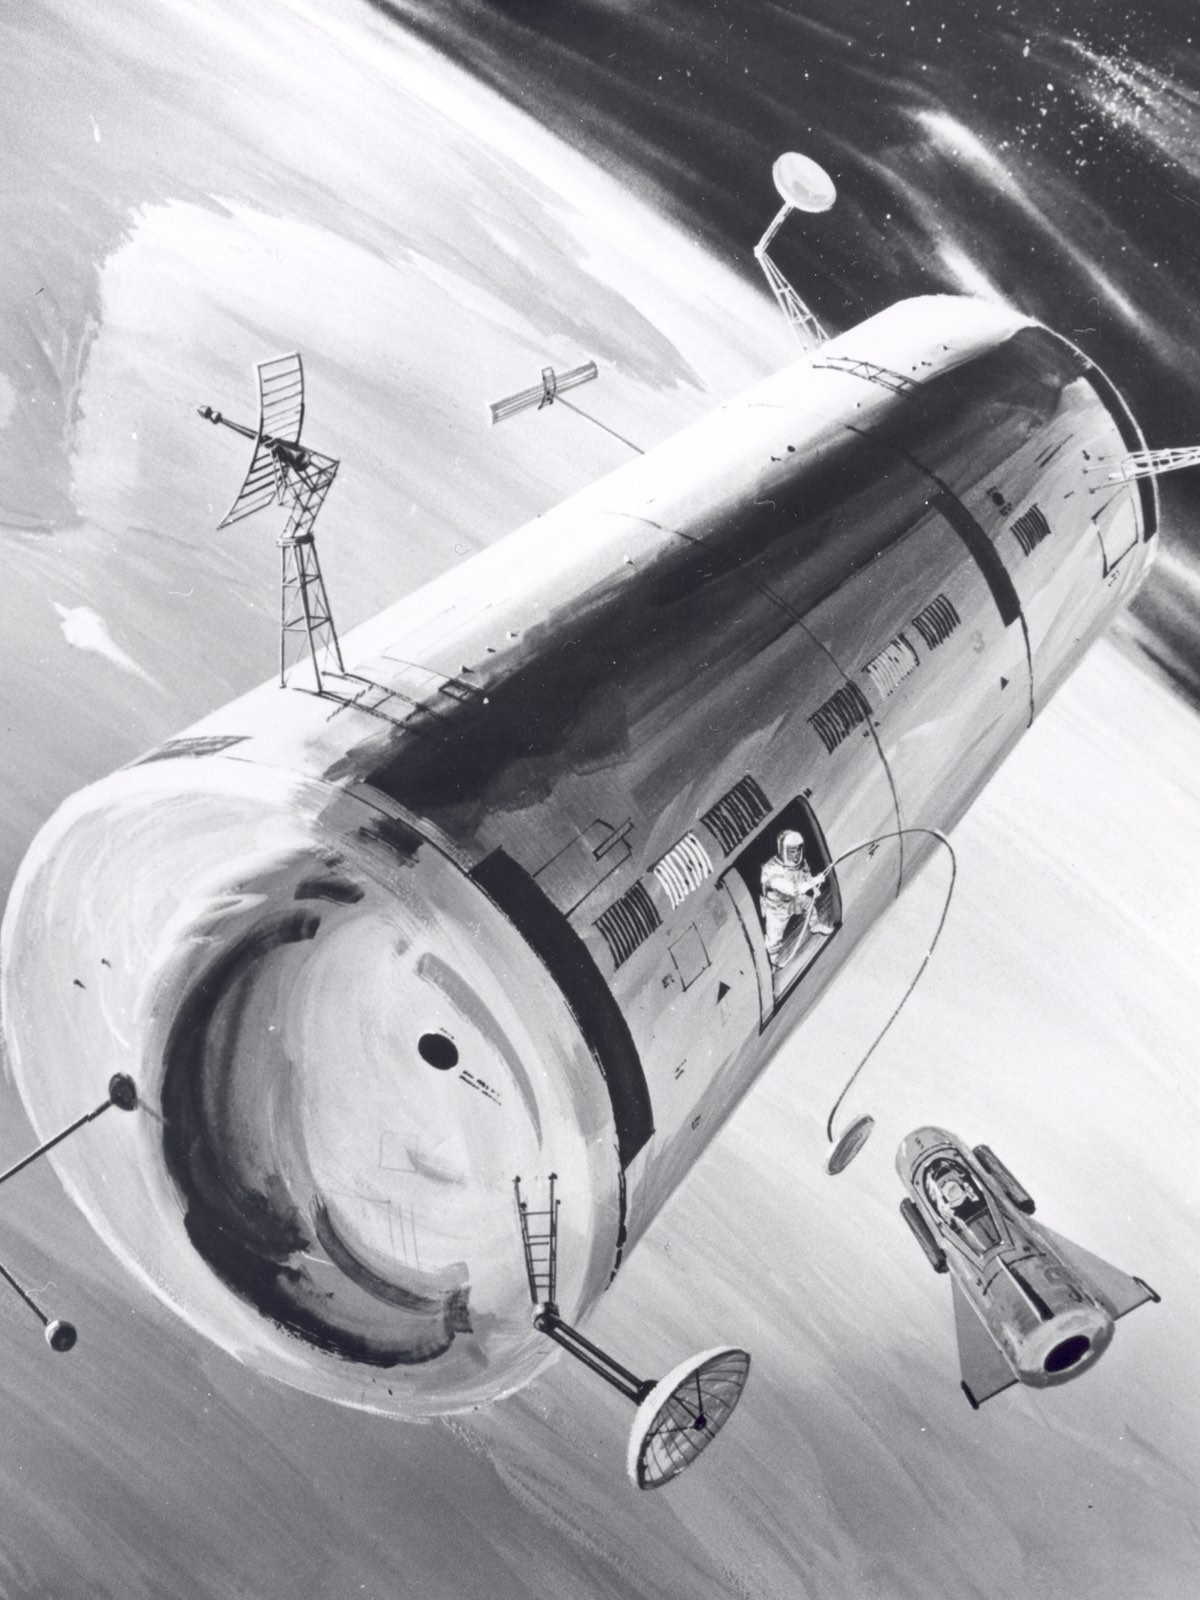 MOL was the USAF's ambitious plan for a space station